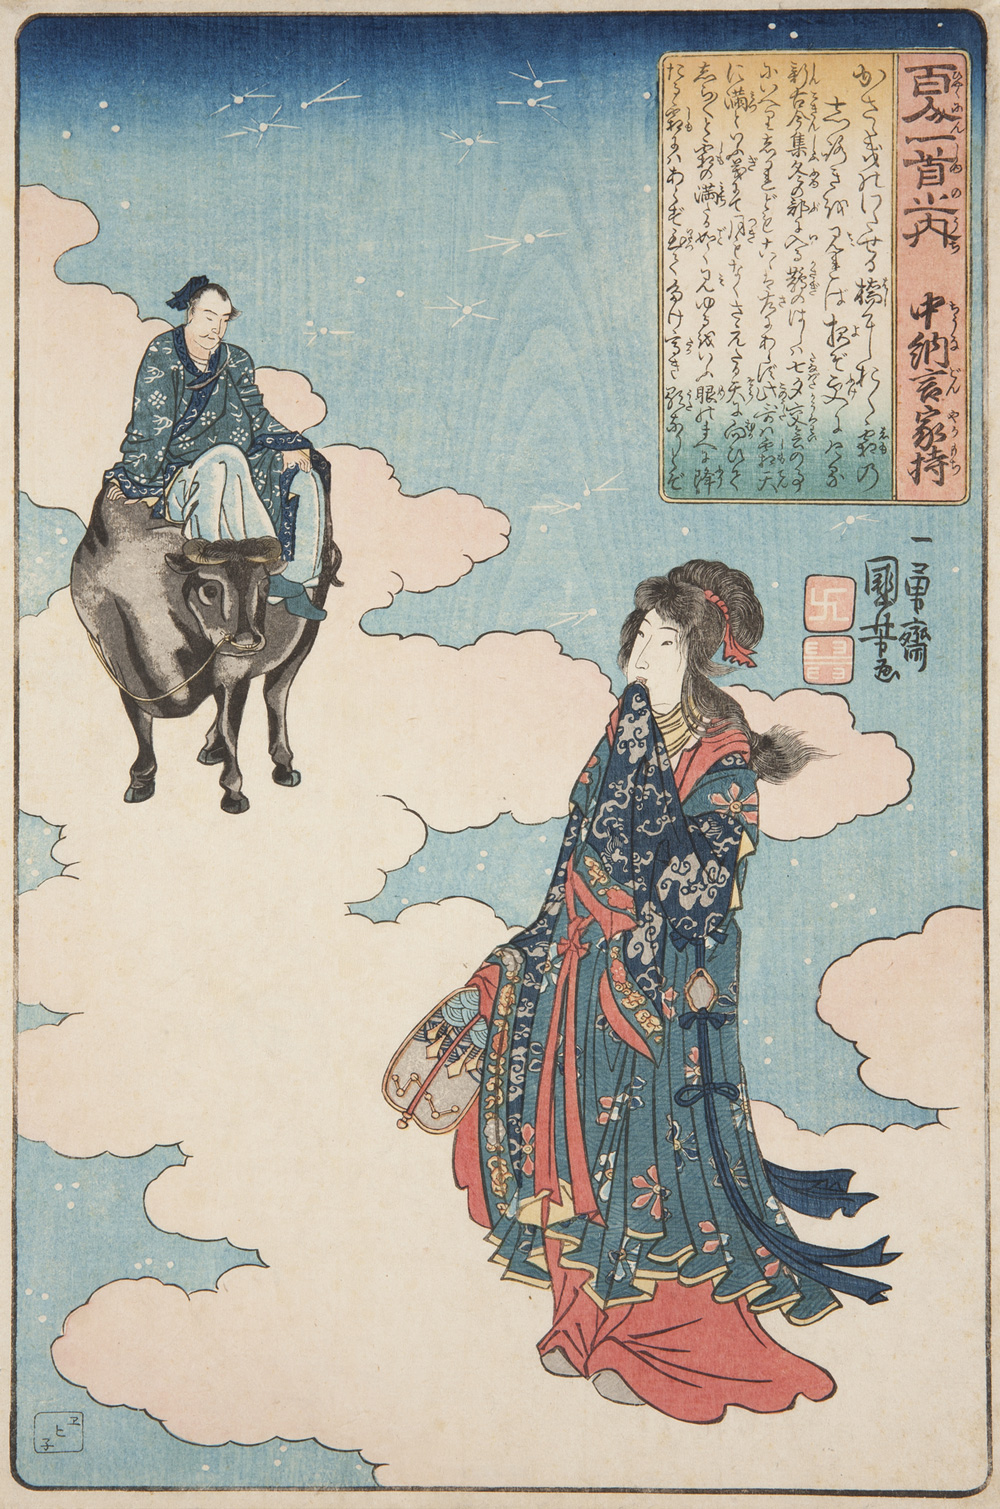 Japanese print of two figures dressed in traditional costume, a woman stands in the foreground on a cloud and a man rides a bull on the cloud towards her.